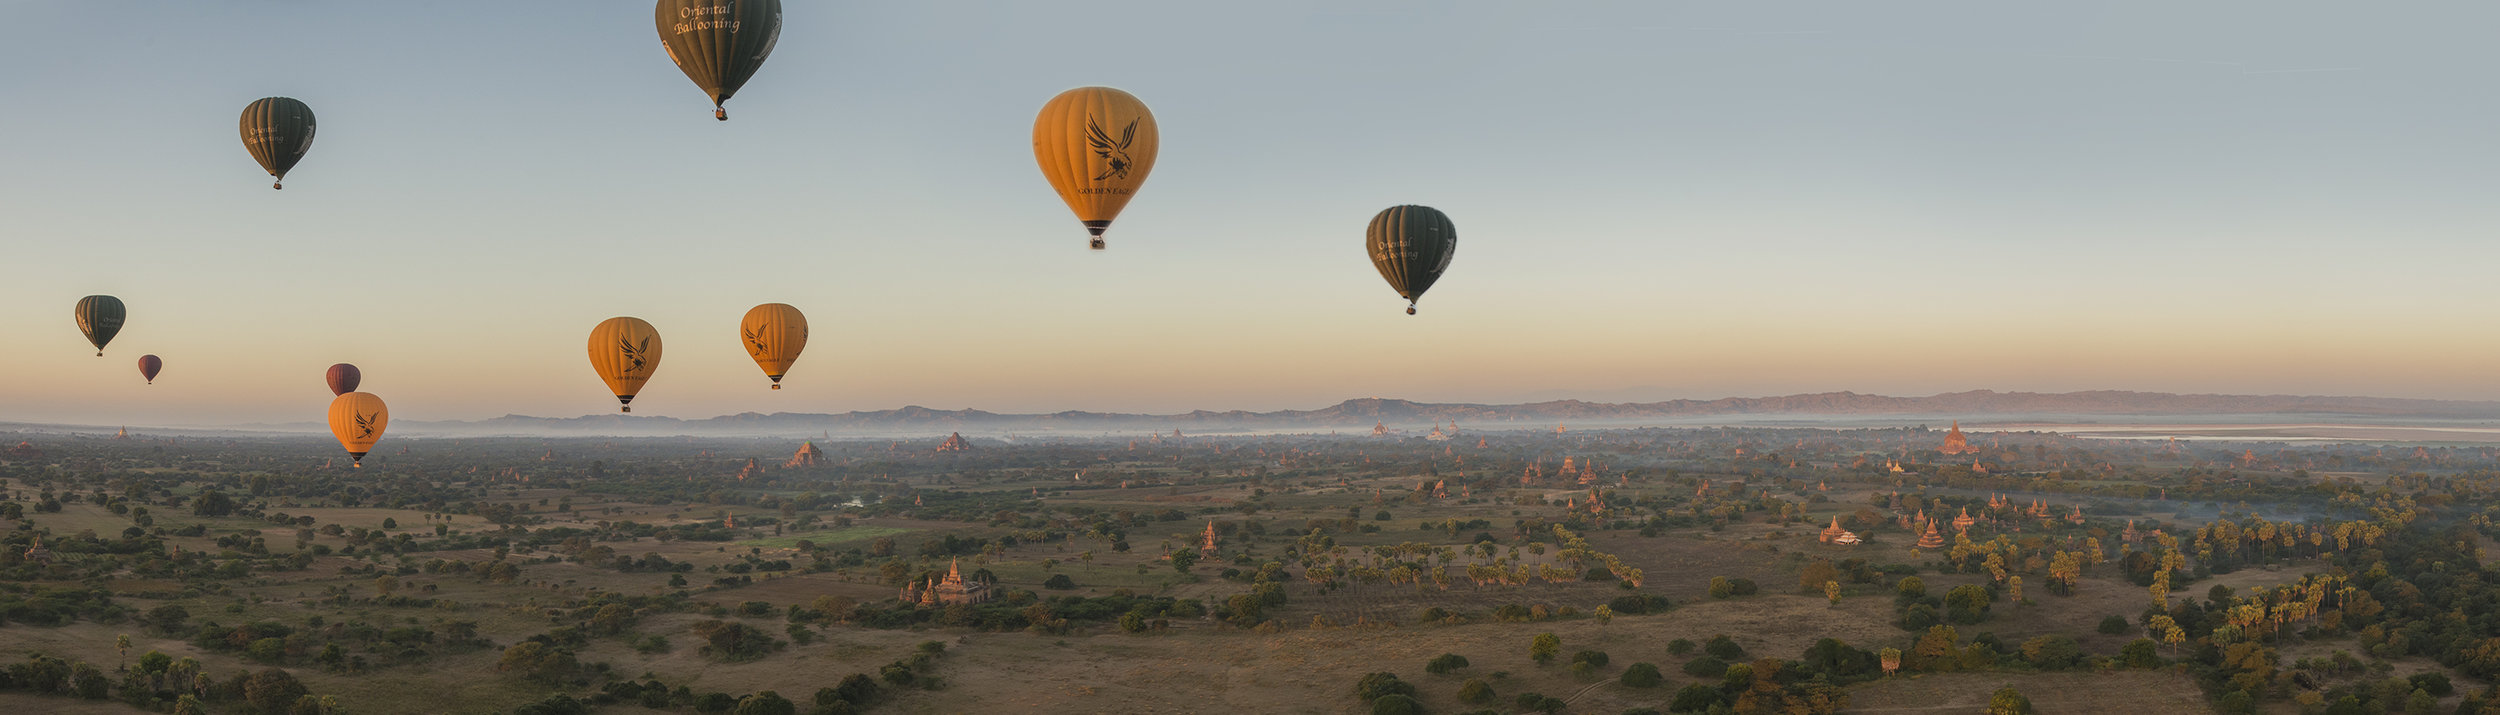 Ballooning over Bagan, Myanmar